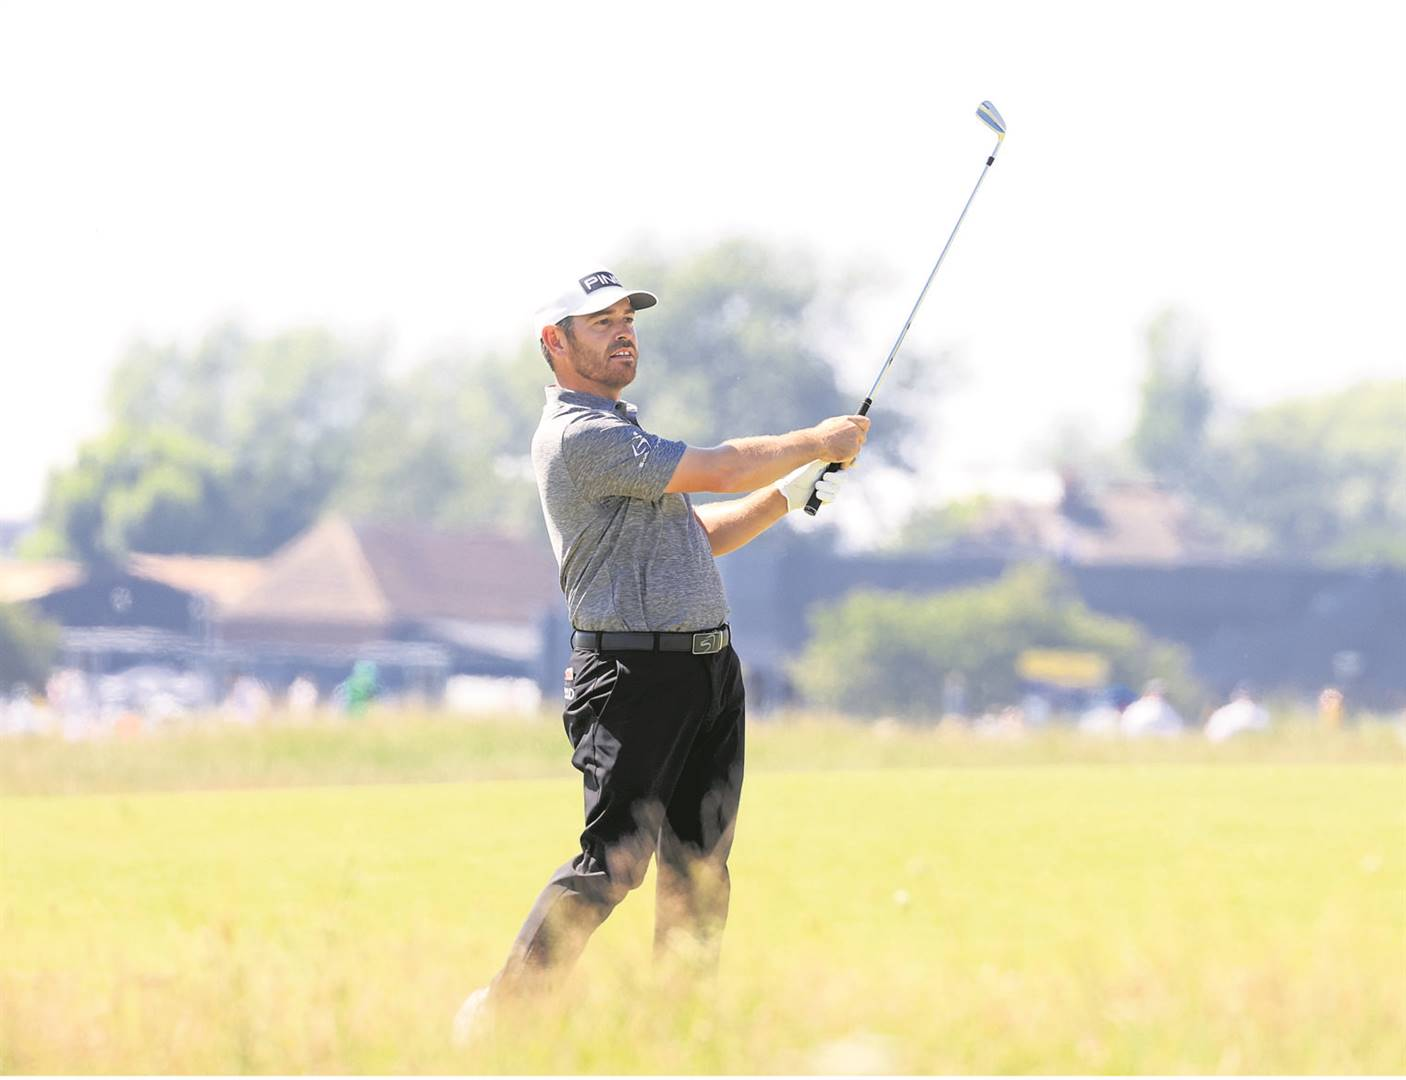 Top South African golfer Louis Oosthuizen returns to American action in Minnesota today after finishing joint-third in the Open Championship in England on Sunday.